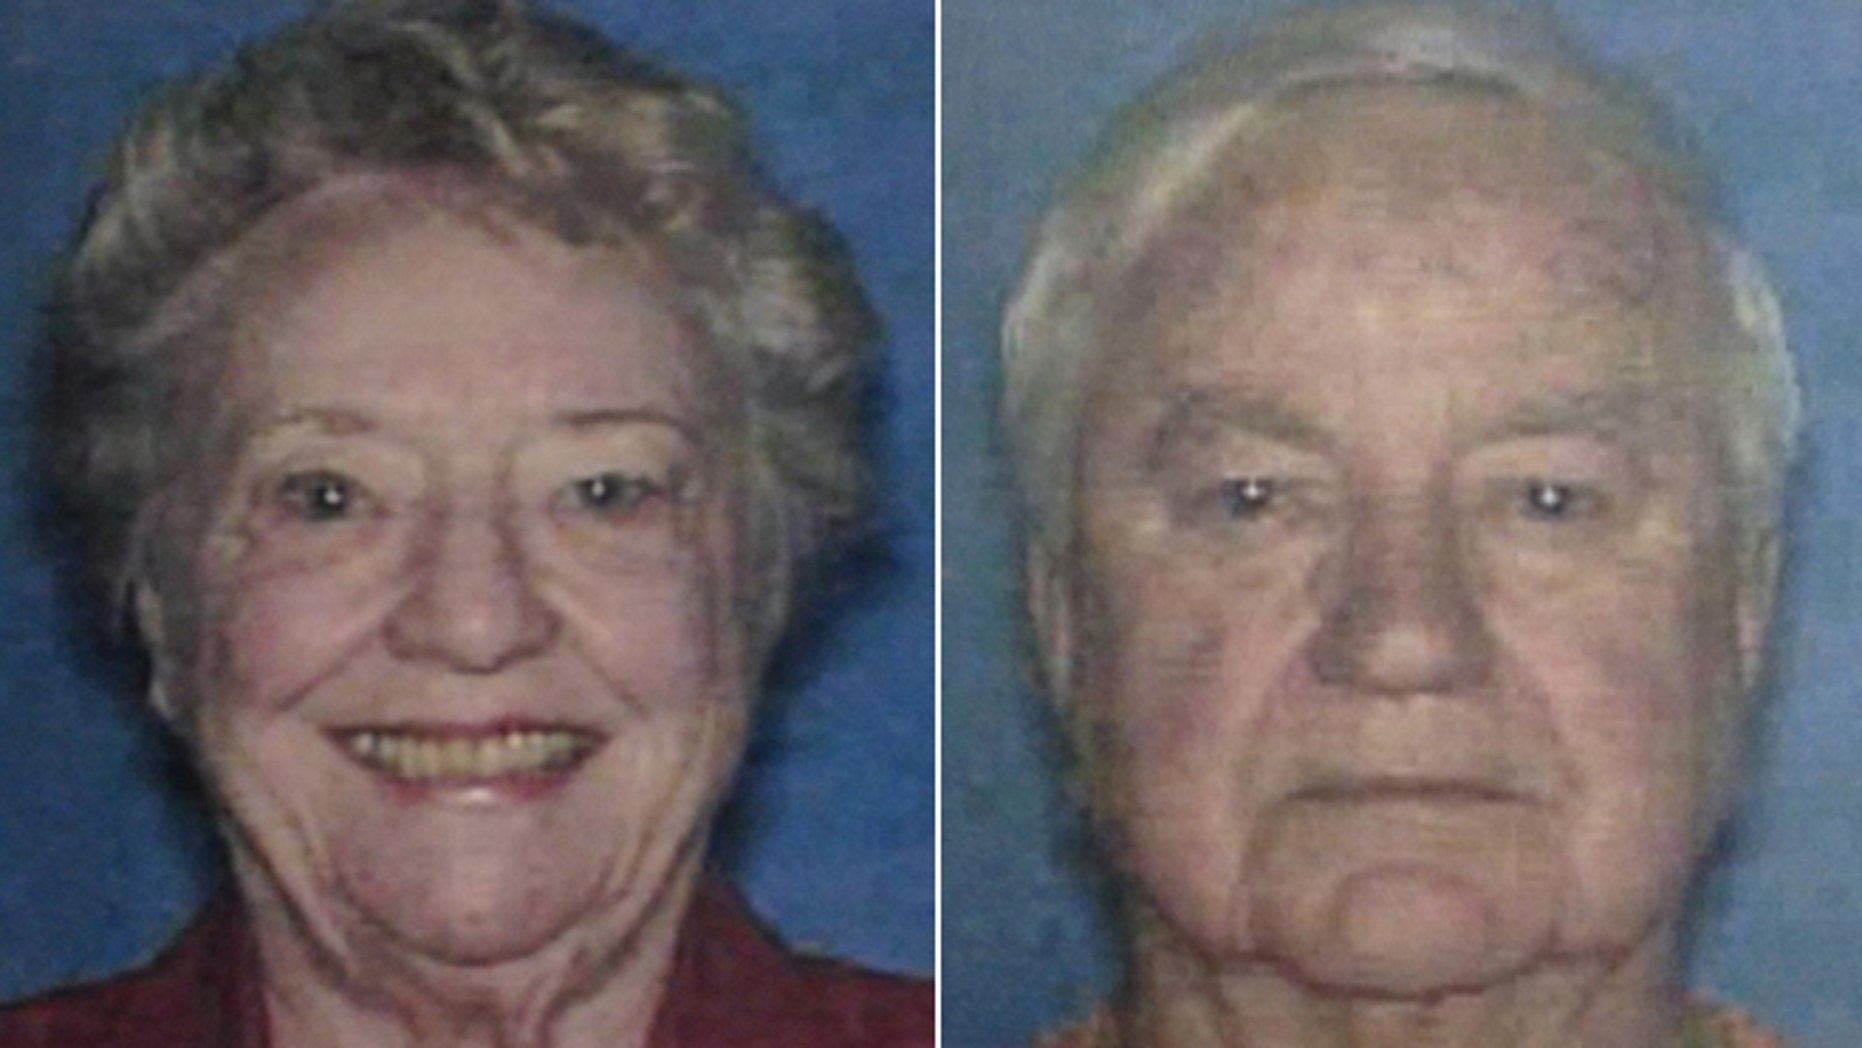 These undated photos made available by the Putnam County Sheriff's Office, Ga., show Russell Dermond, 88, and his wife Shirley Russell Dermond, 87, who were murdered in their home in Lake Oconee, Ga. (AP/Putnam County Sheriff's Office, HO)